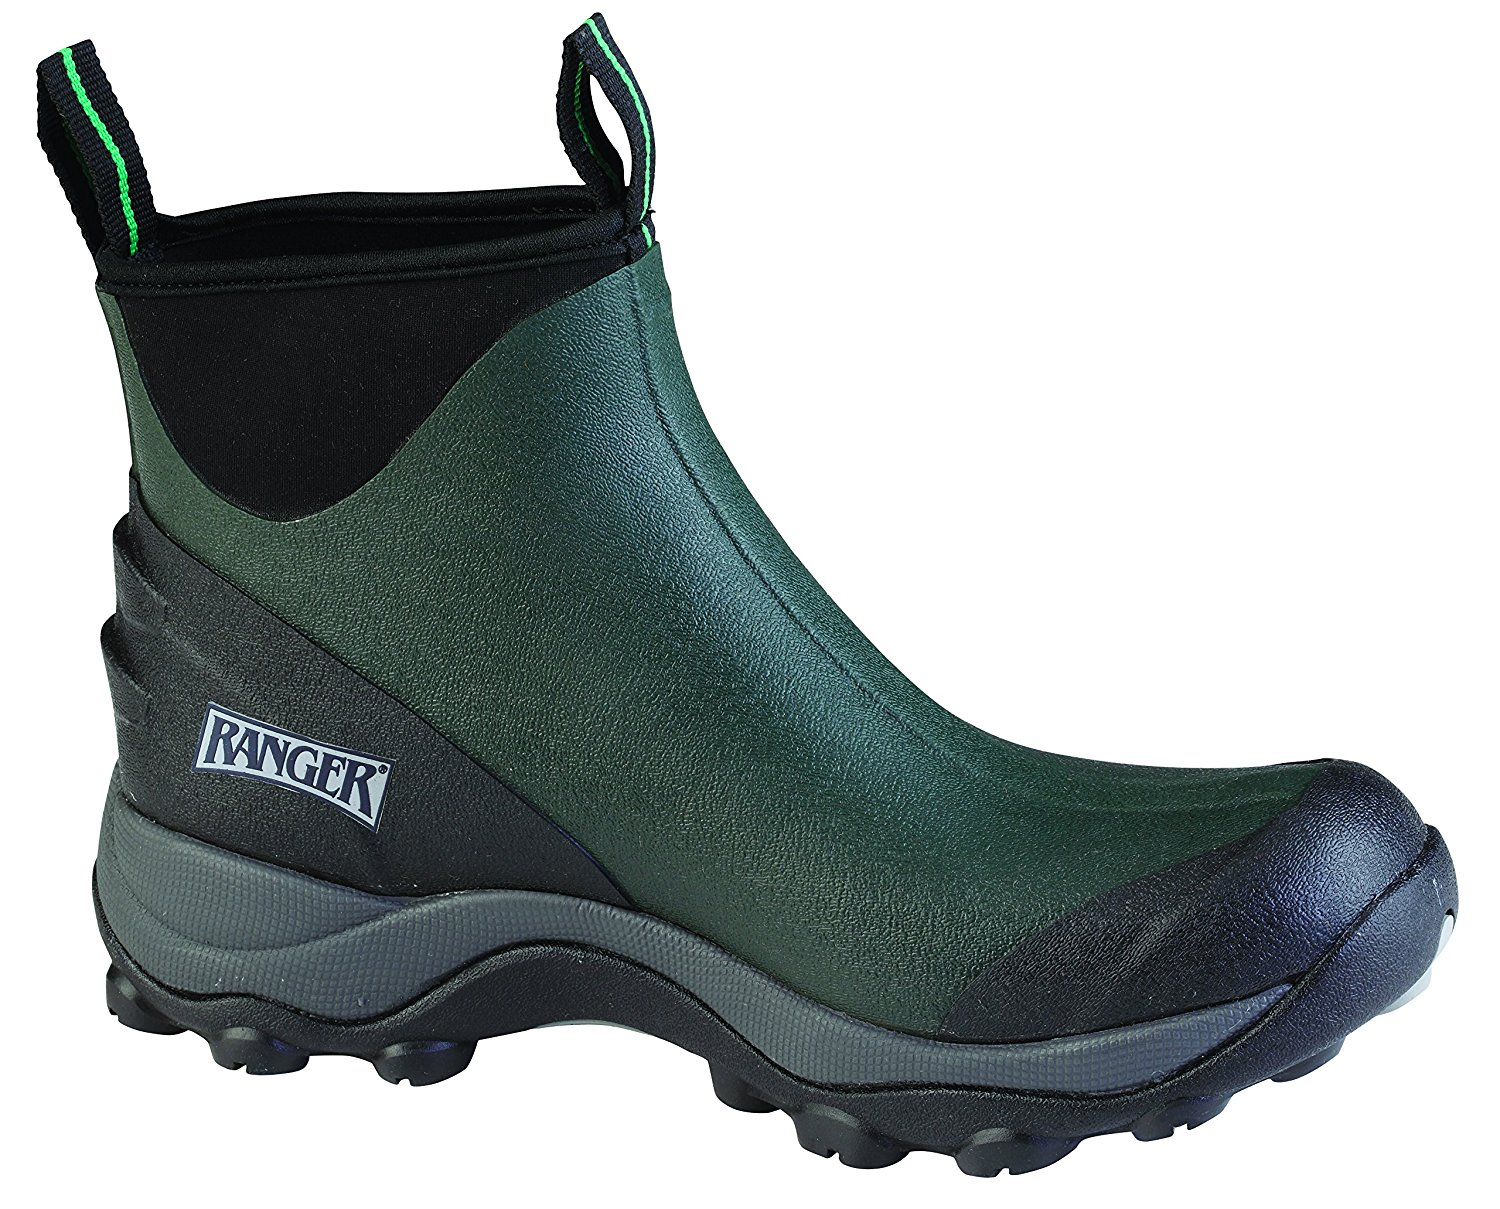 New Ocean Pro 6.5mm Neo Classic Molded Sole Boots Size 8 for Scuba Diving a $12.95 Value Snorkeling /& All Watersports with a FREE Drawstring Mesh Collection Bag...